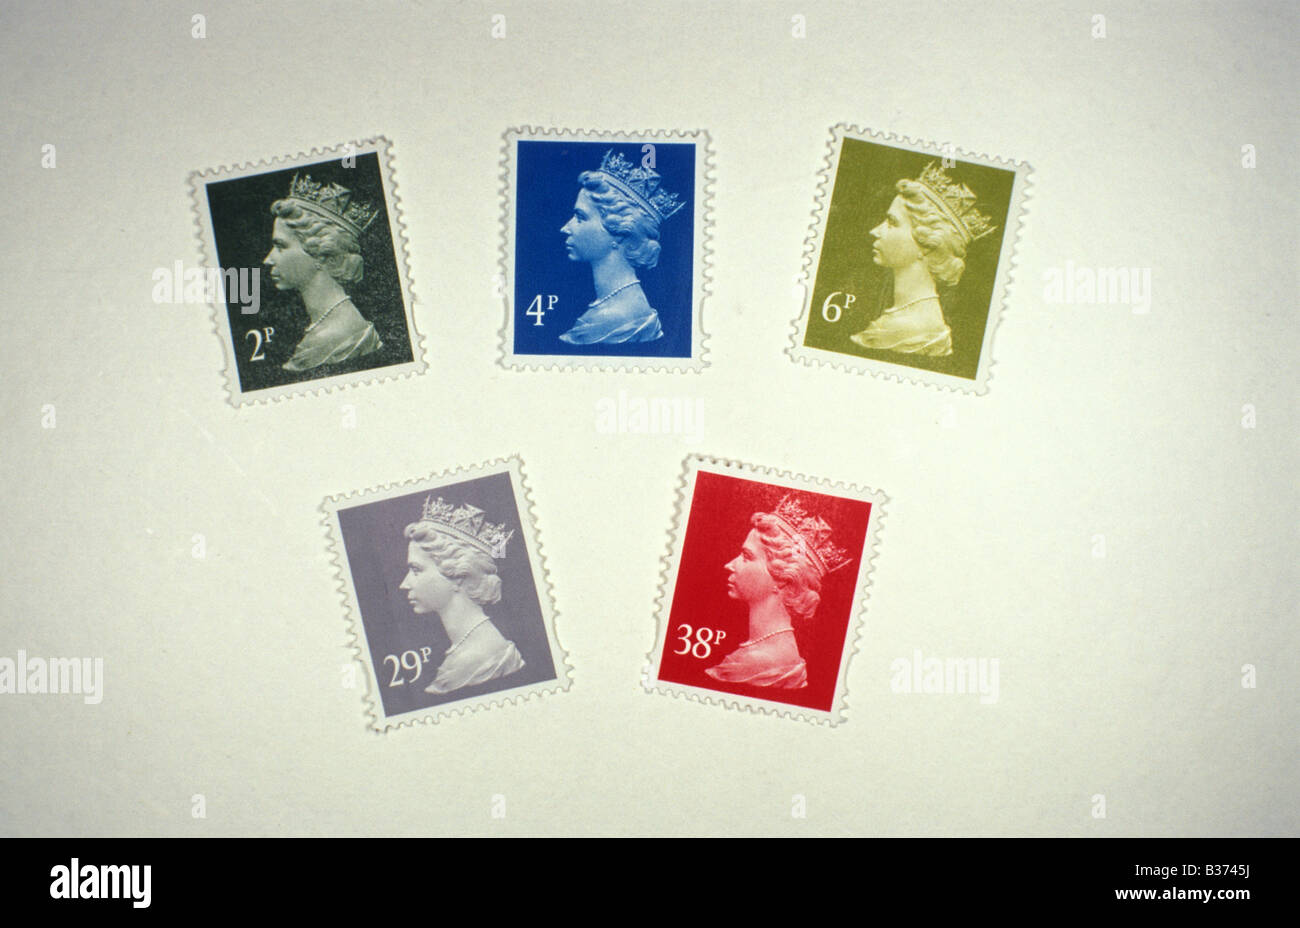 coloured postage stamps illuminated by white light see also B373FA for same stamps in red light - Stock Image